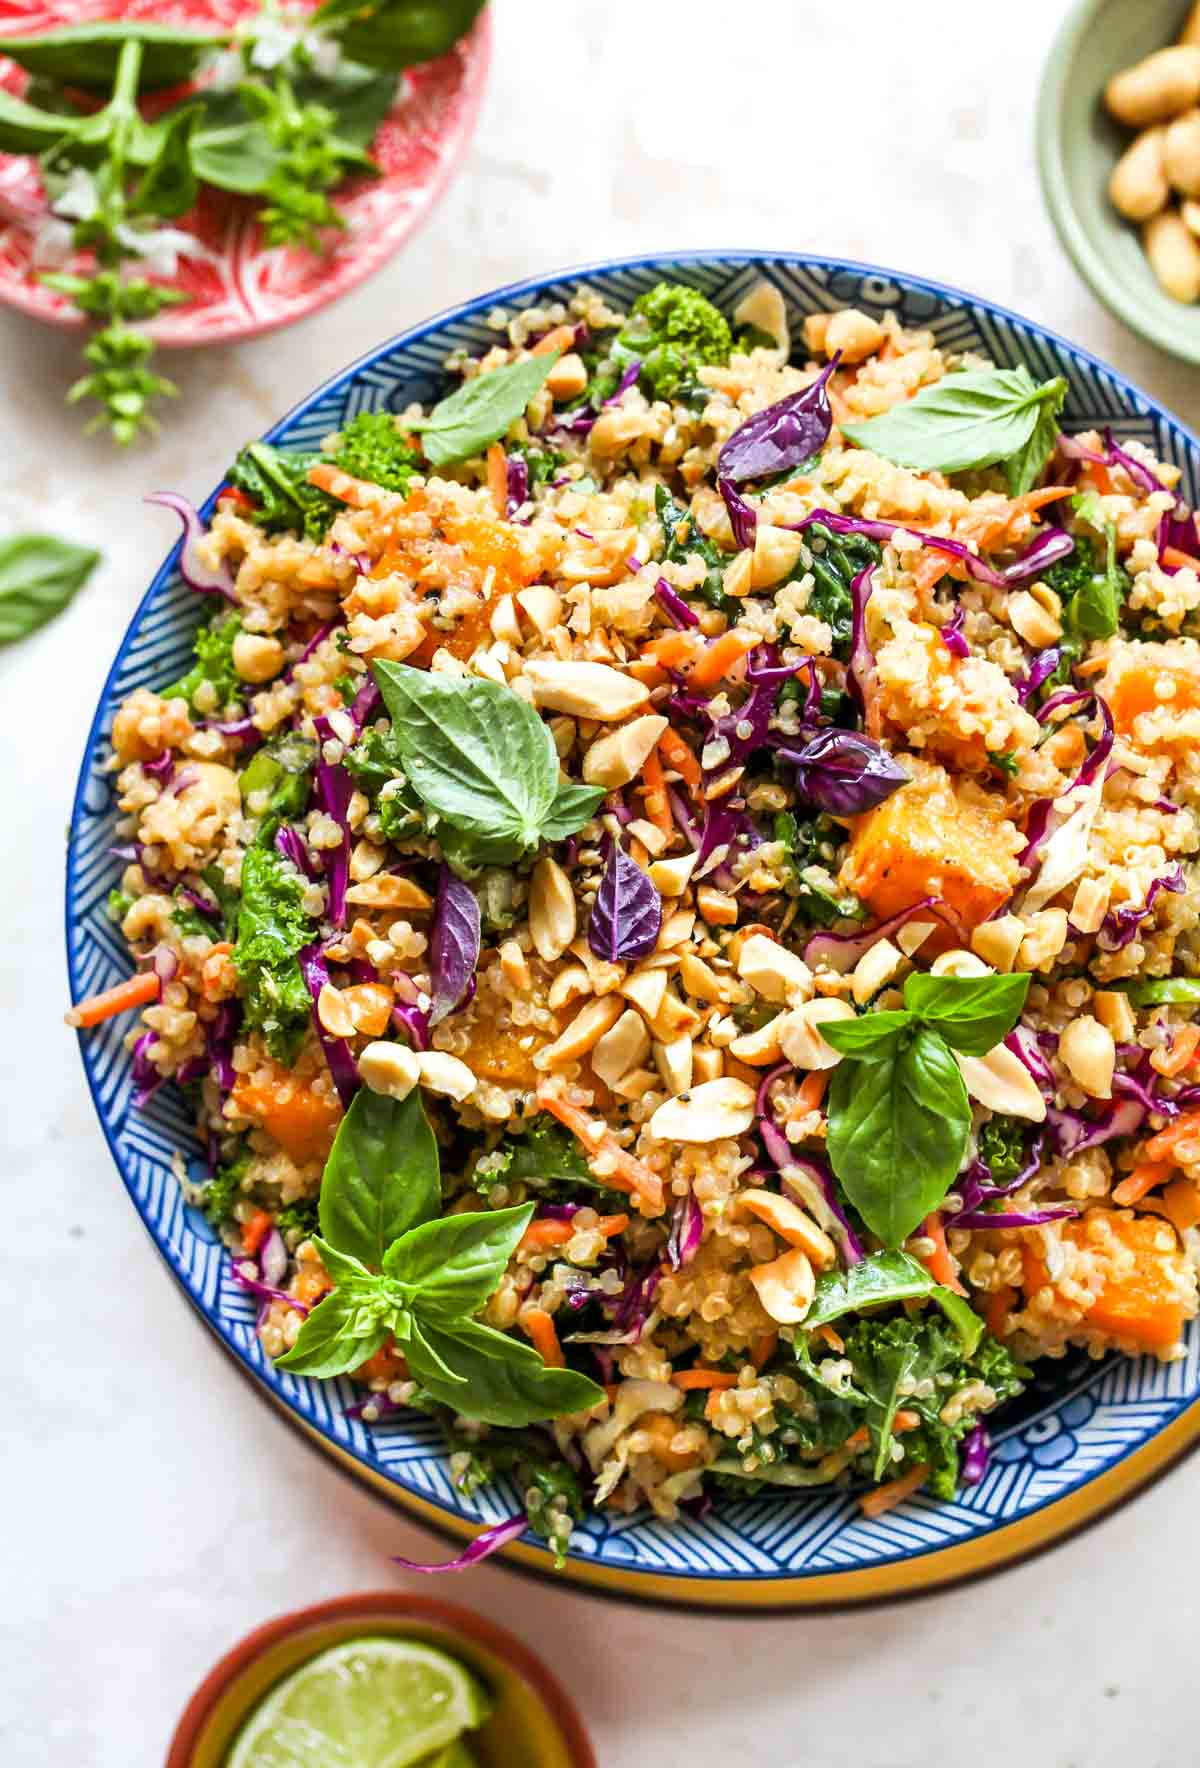 Quinoa and butternut squash salad topped with basil and peanuts